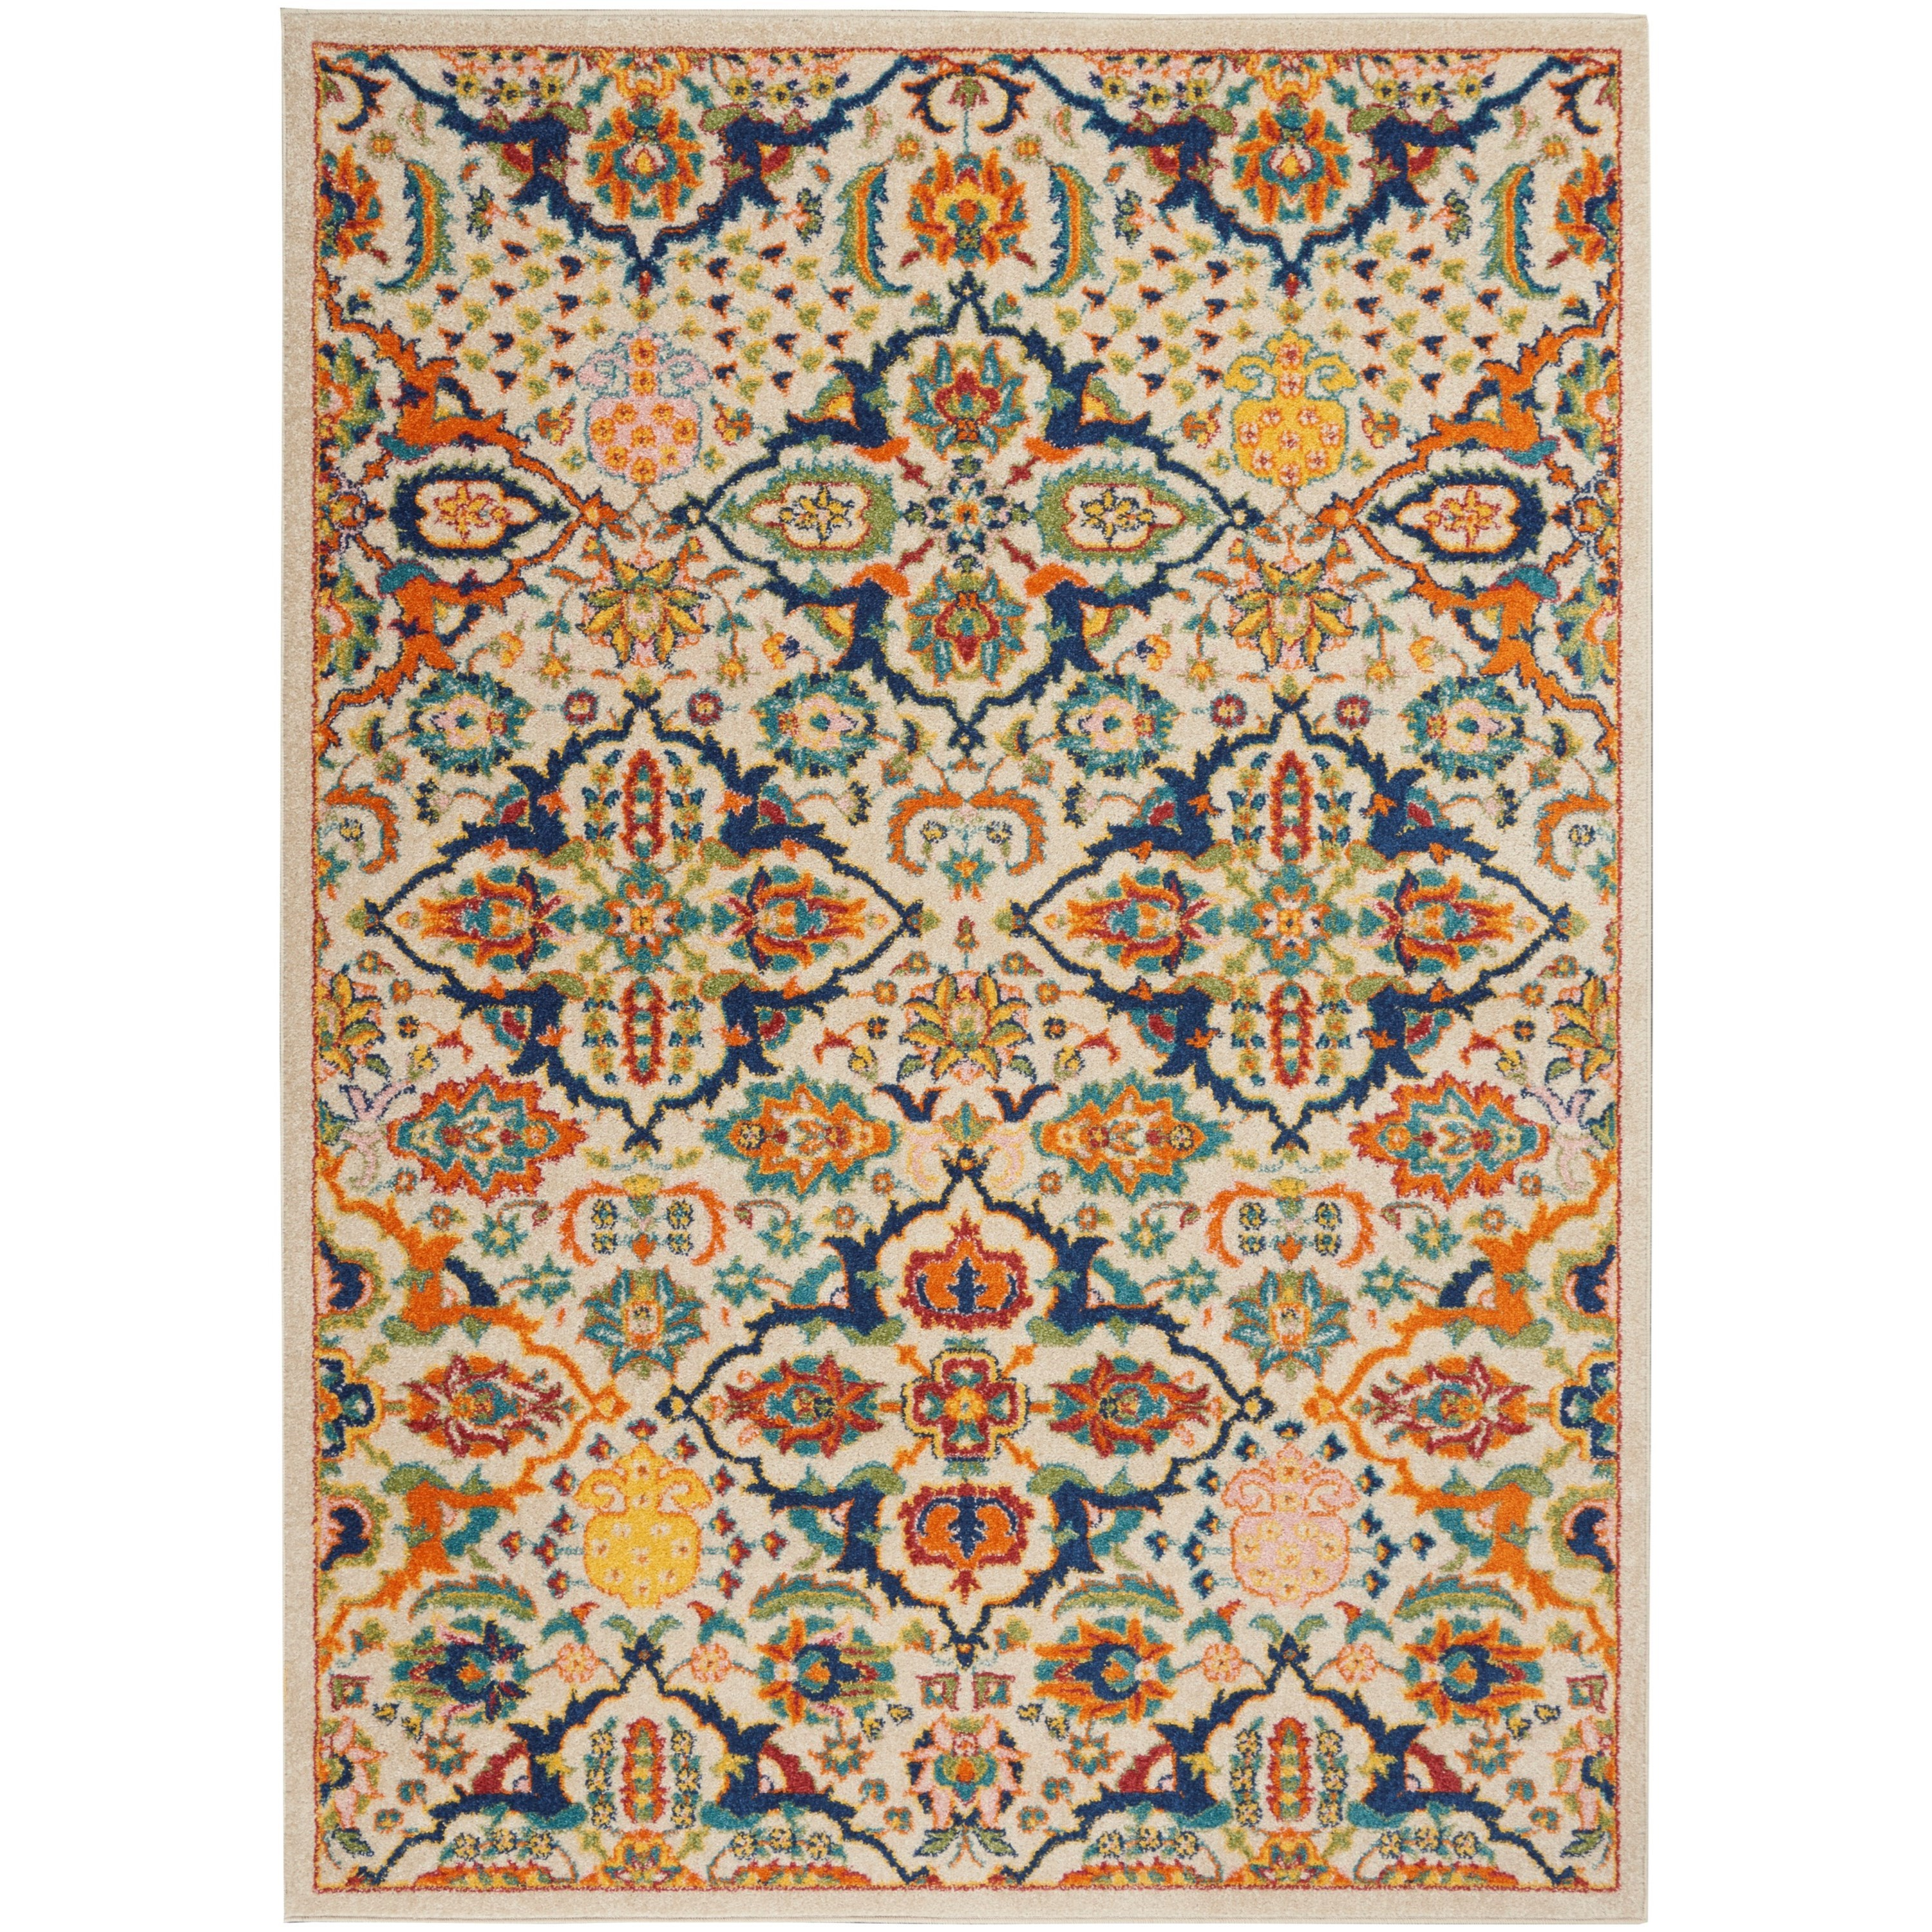 Allur 2020 4' x 6' Rug by Nourison at Home Collections Furniture